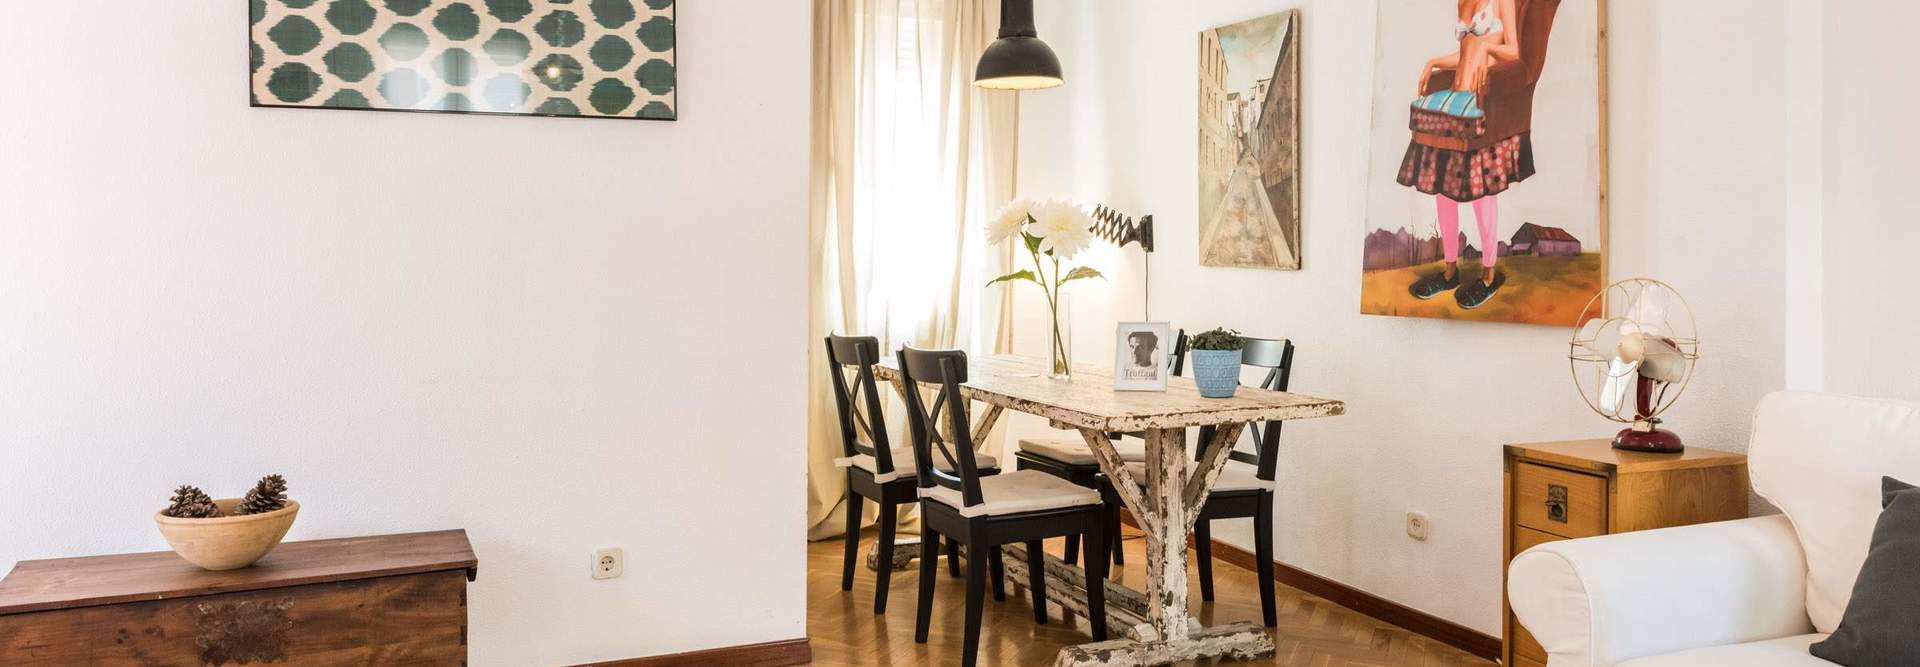 Home alquiler apartamento por d as madrid centro  18